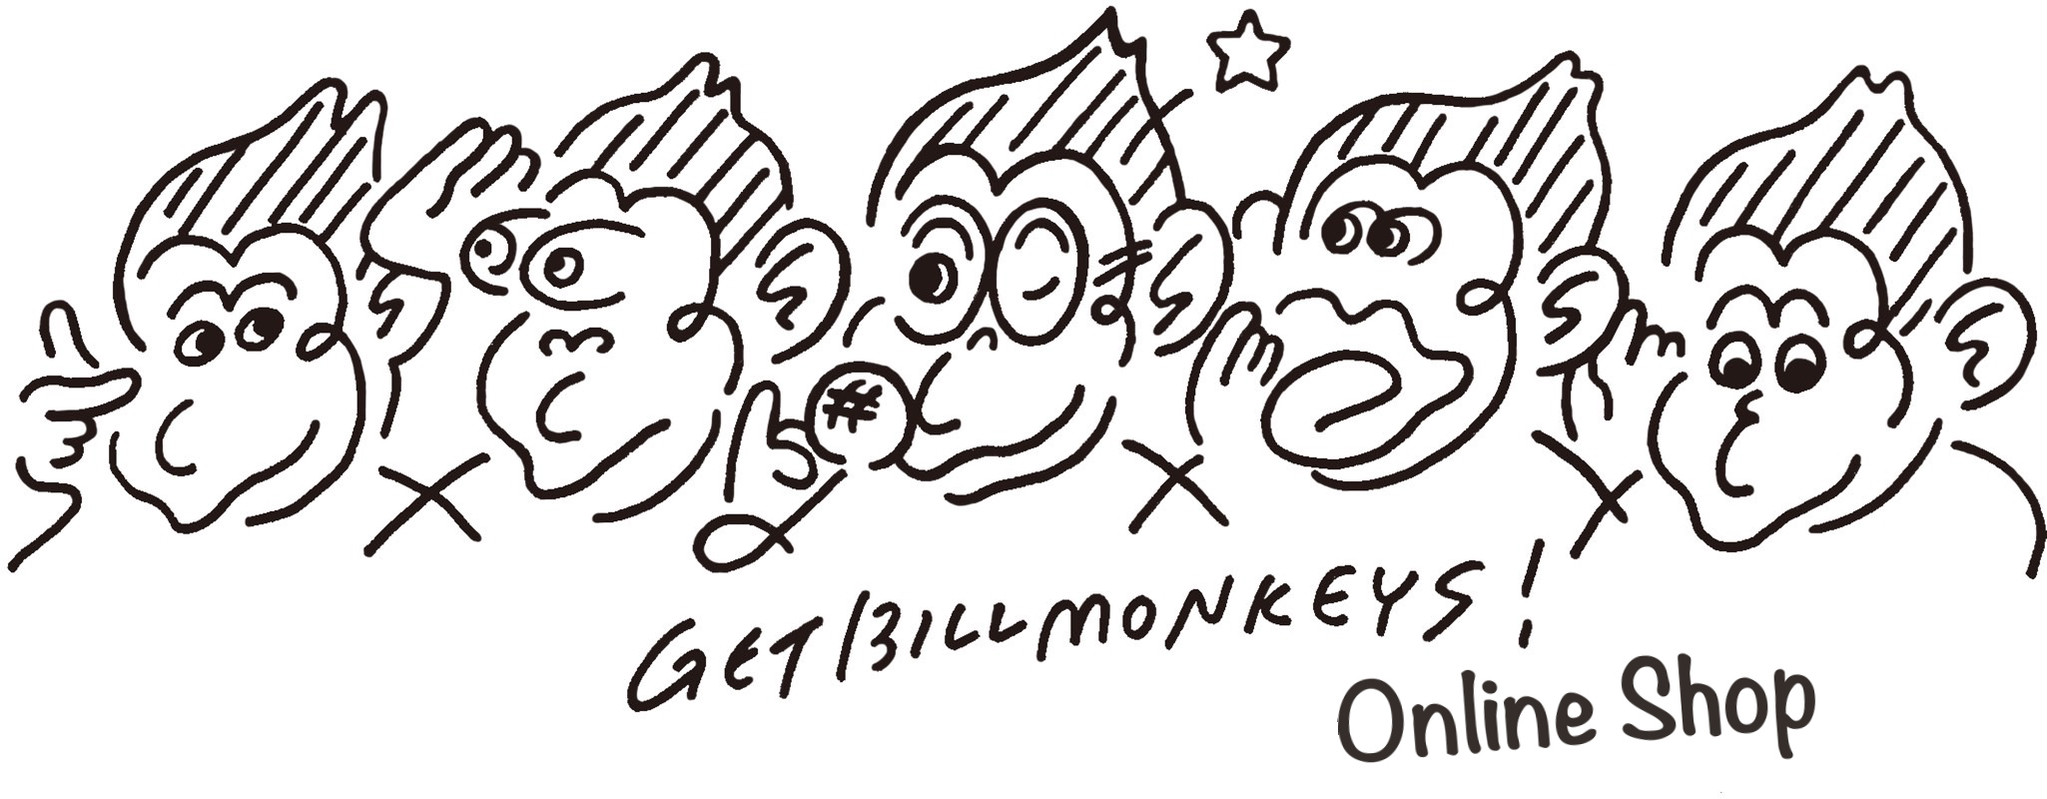 GET BILL MONKEYS Online Shop